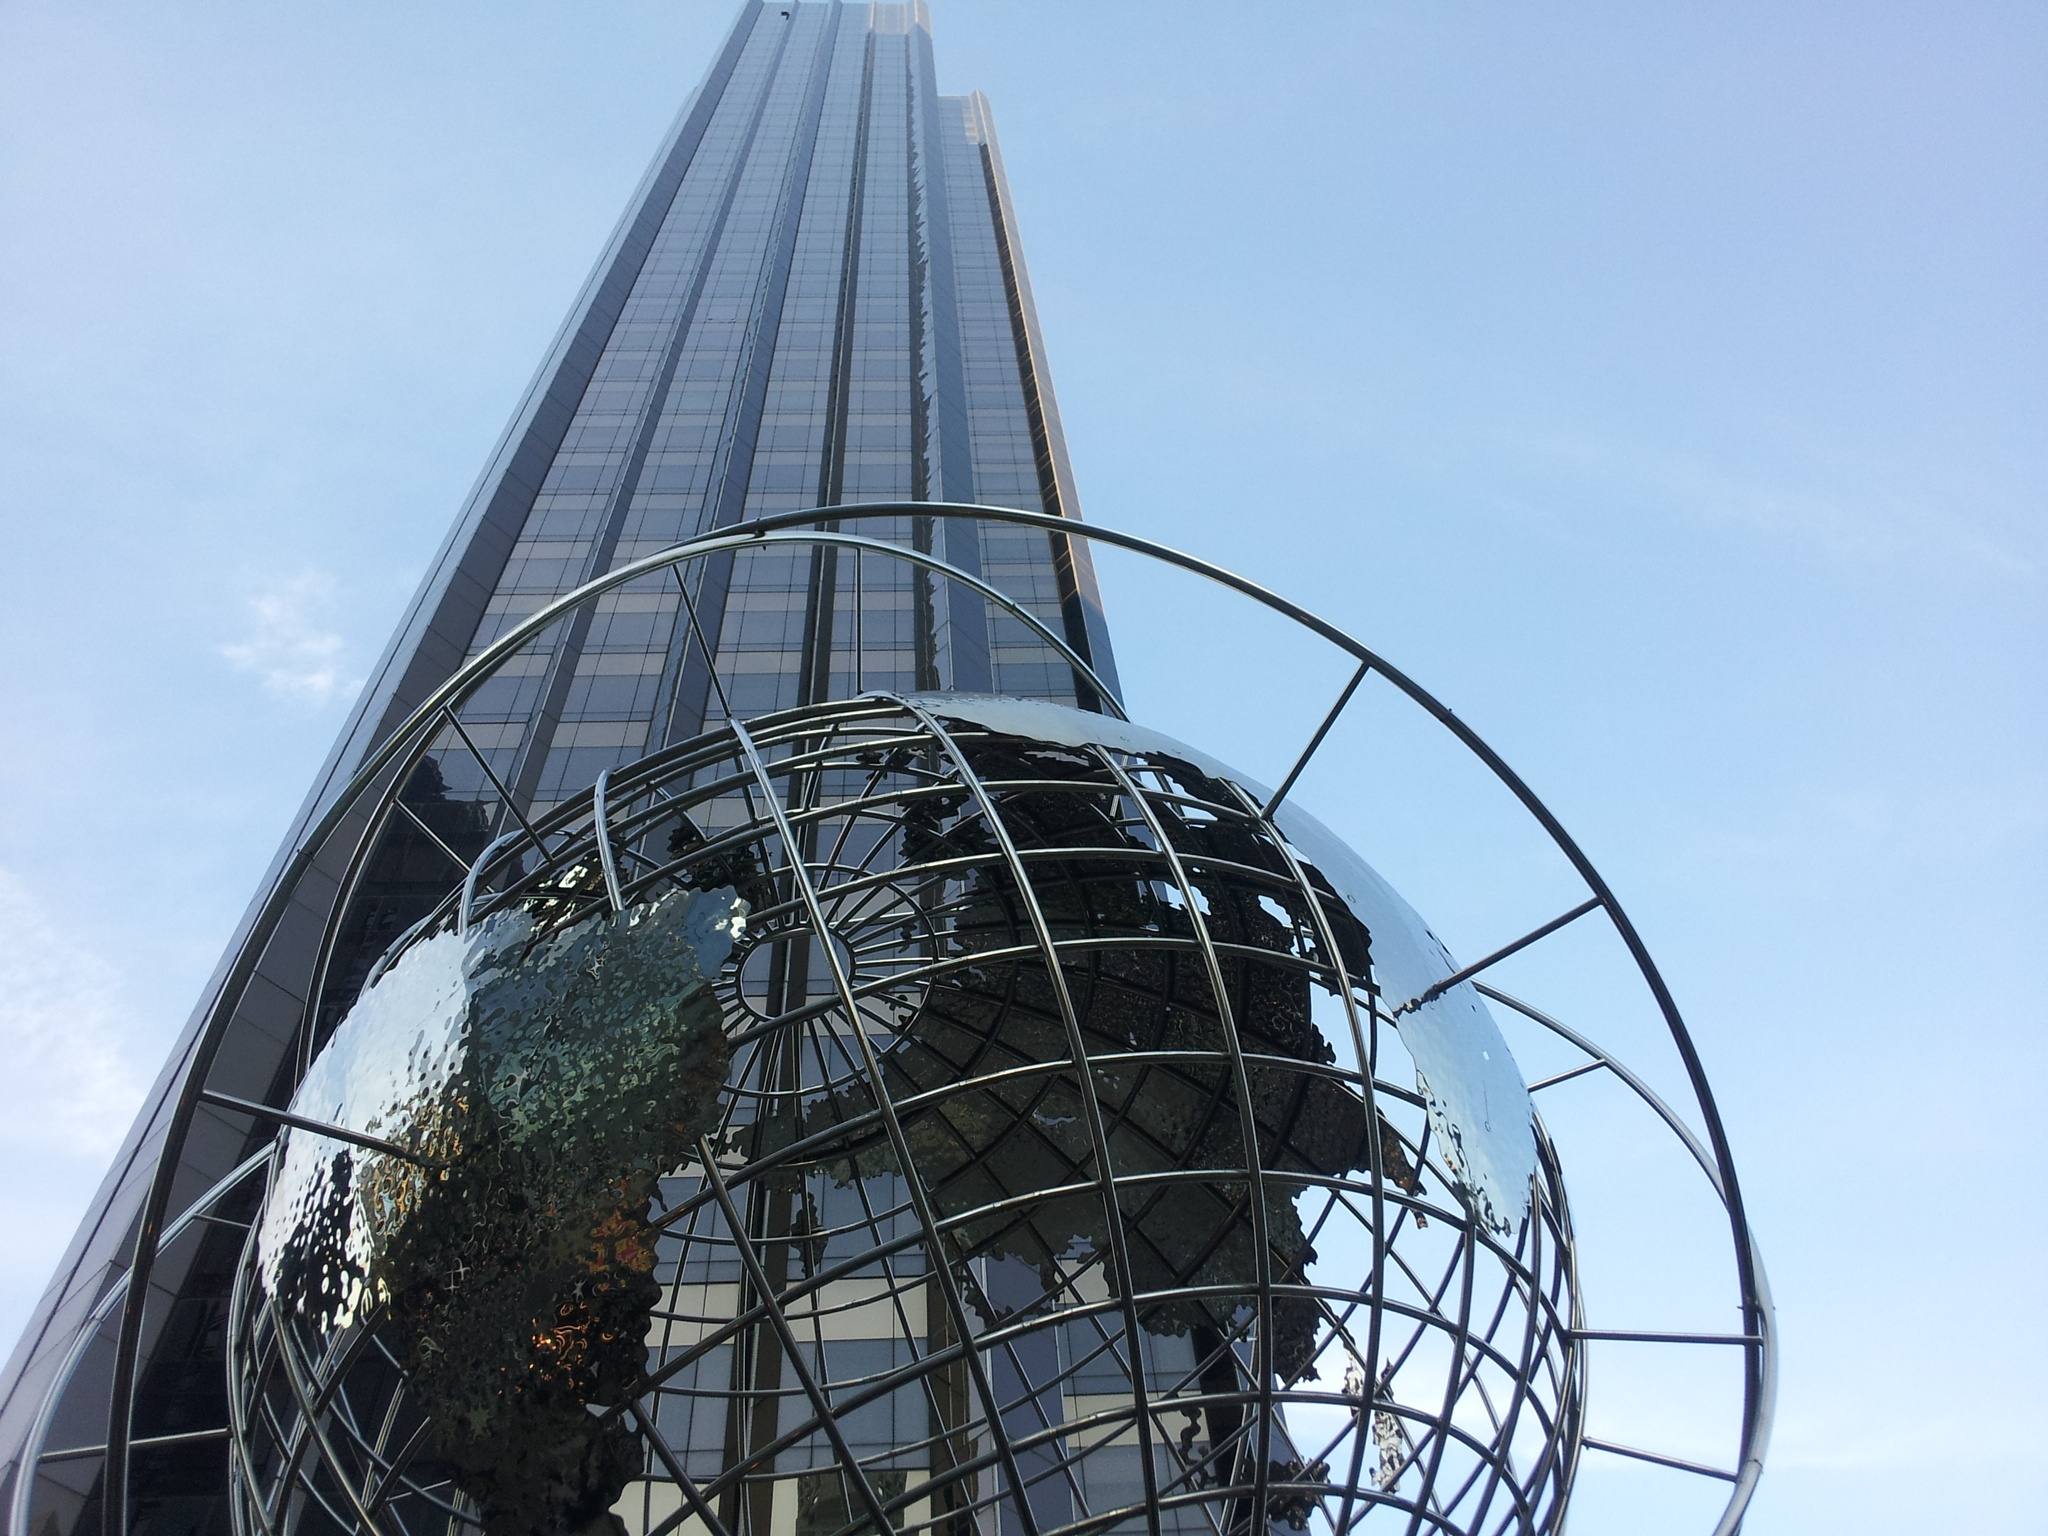 Columbus Circle by Christopher Smith